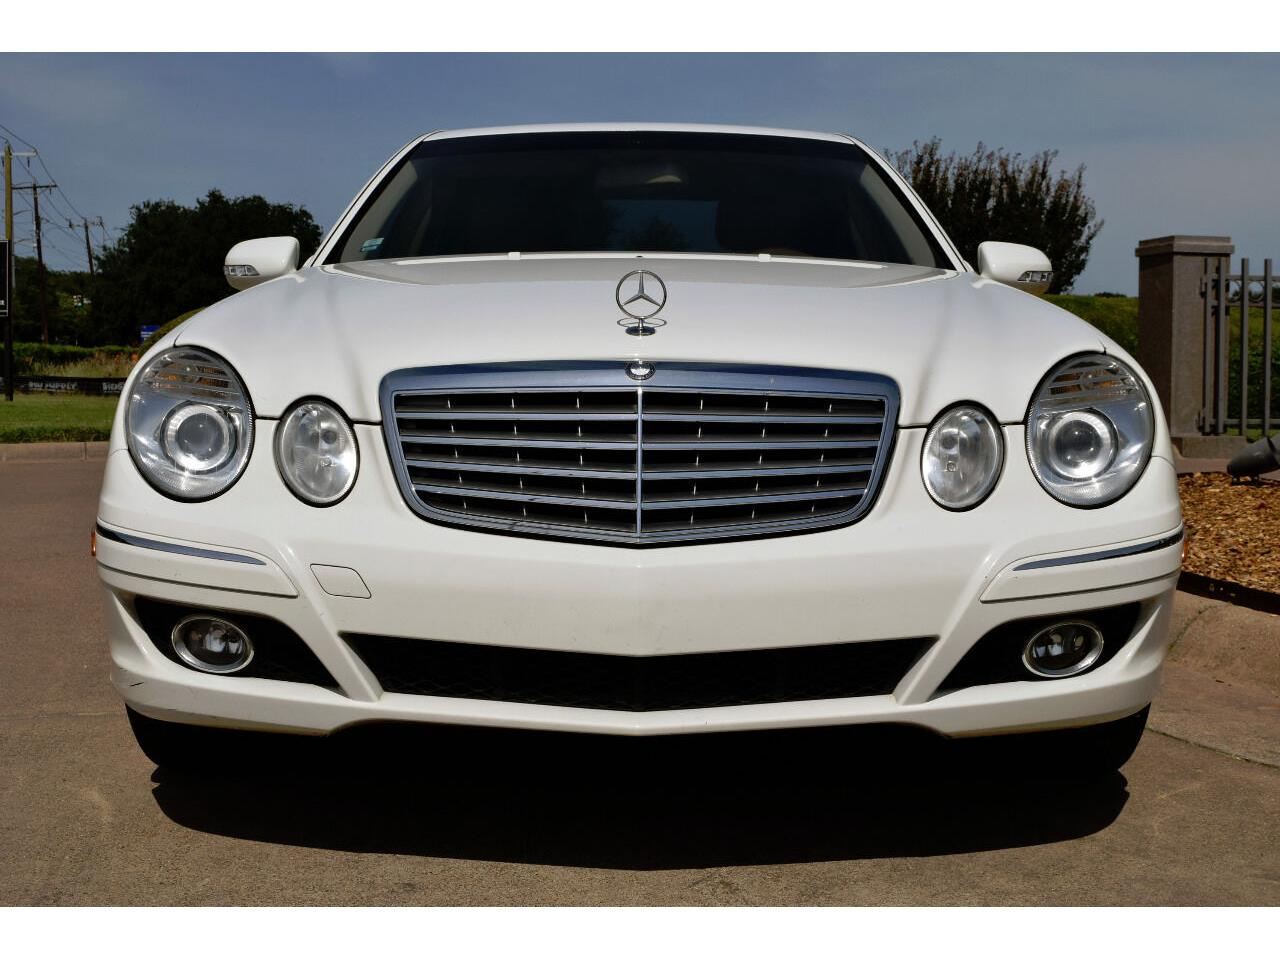 2009 Mercedes-Benz E-Class (CC-1246777) for sale in Fort Worth, Texas